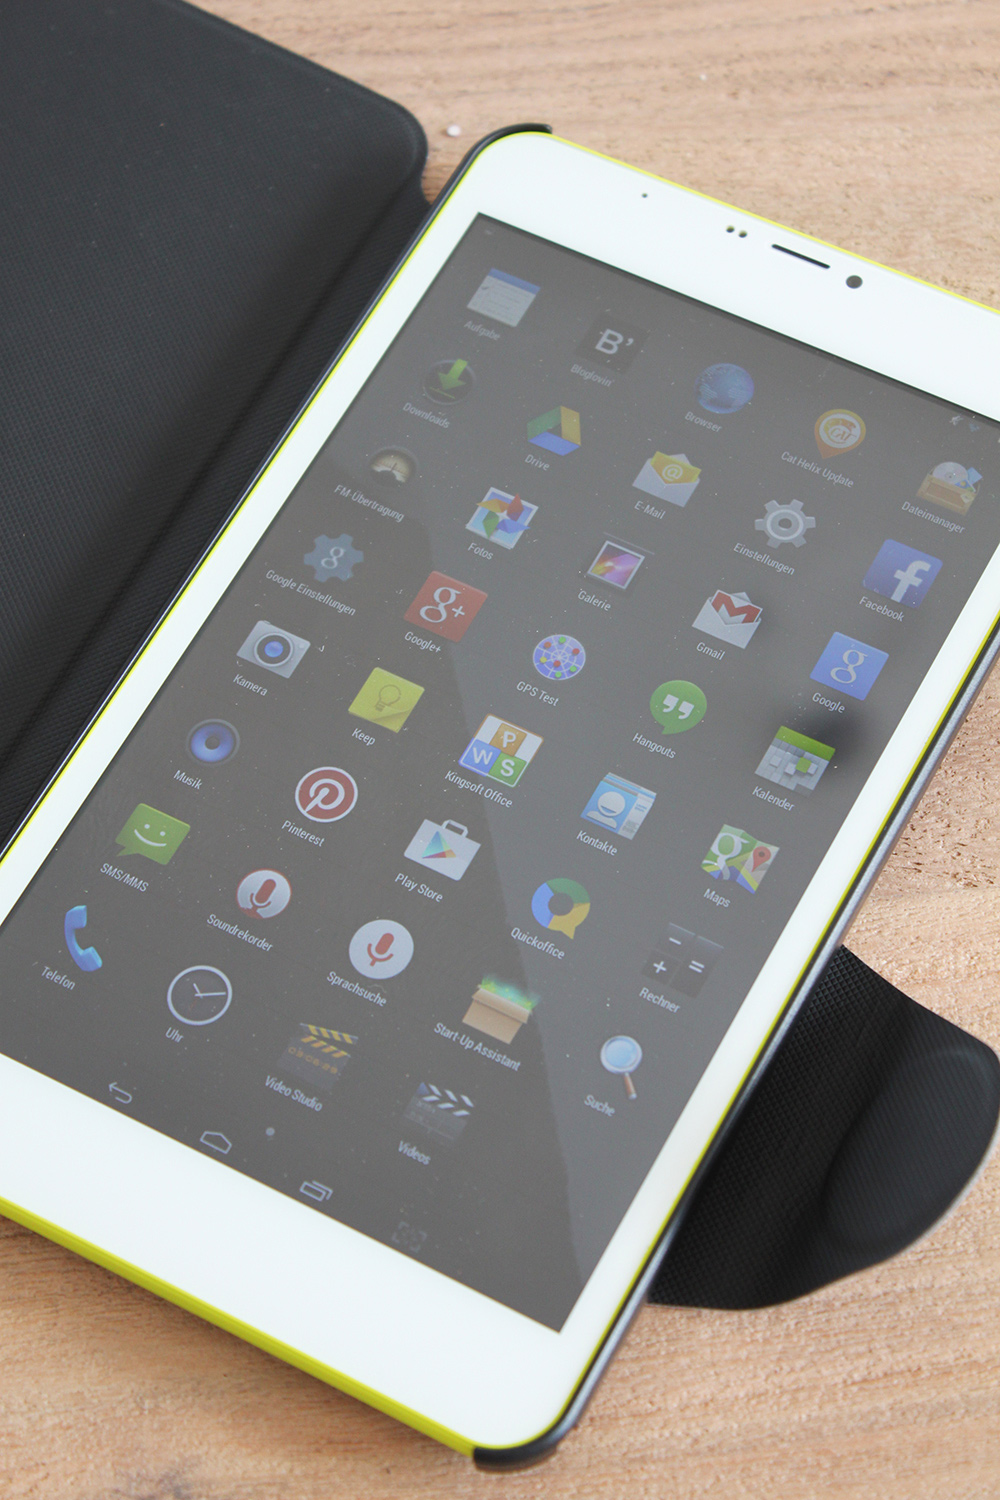 who is mocca, blogger, tirol, fashionblogger, beautyblogger, cat helix tablet, 3g tablet, wifi verbindung, testbericht, erfahrungsbericht, whoismocca.com